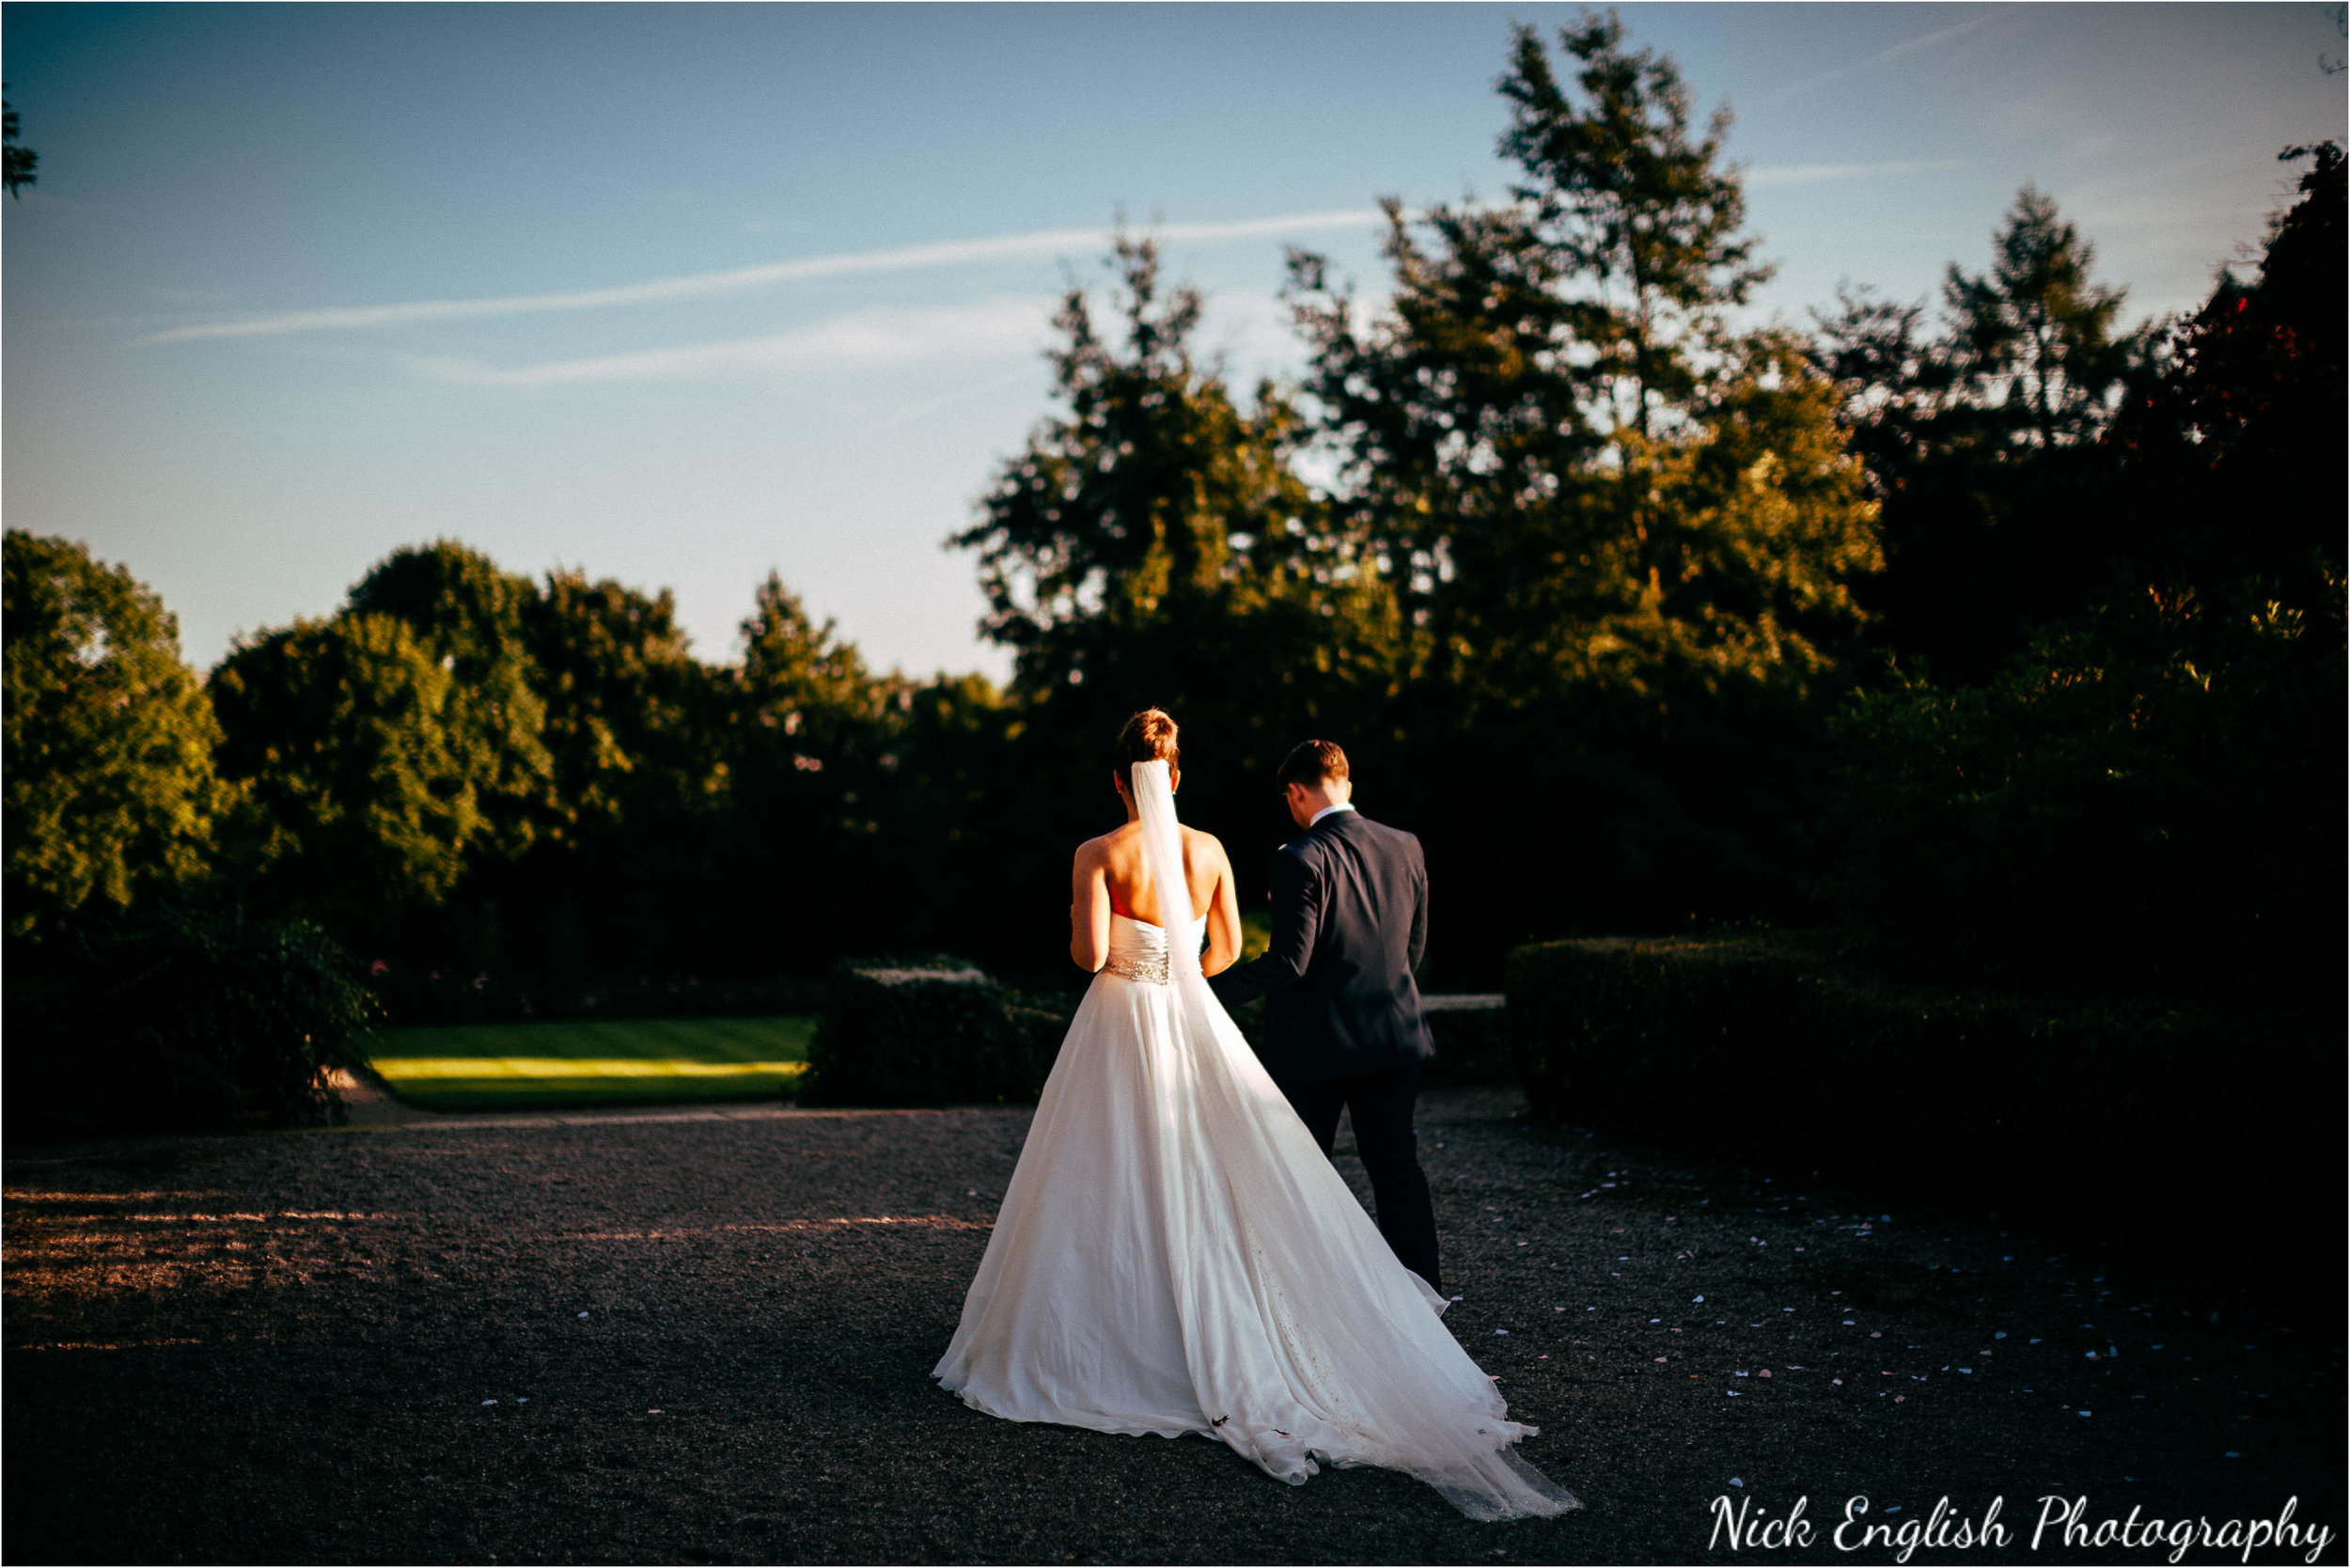 Eaves_Hall_Wedding_Photographs_Nick_English_Photography-213.jpg